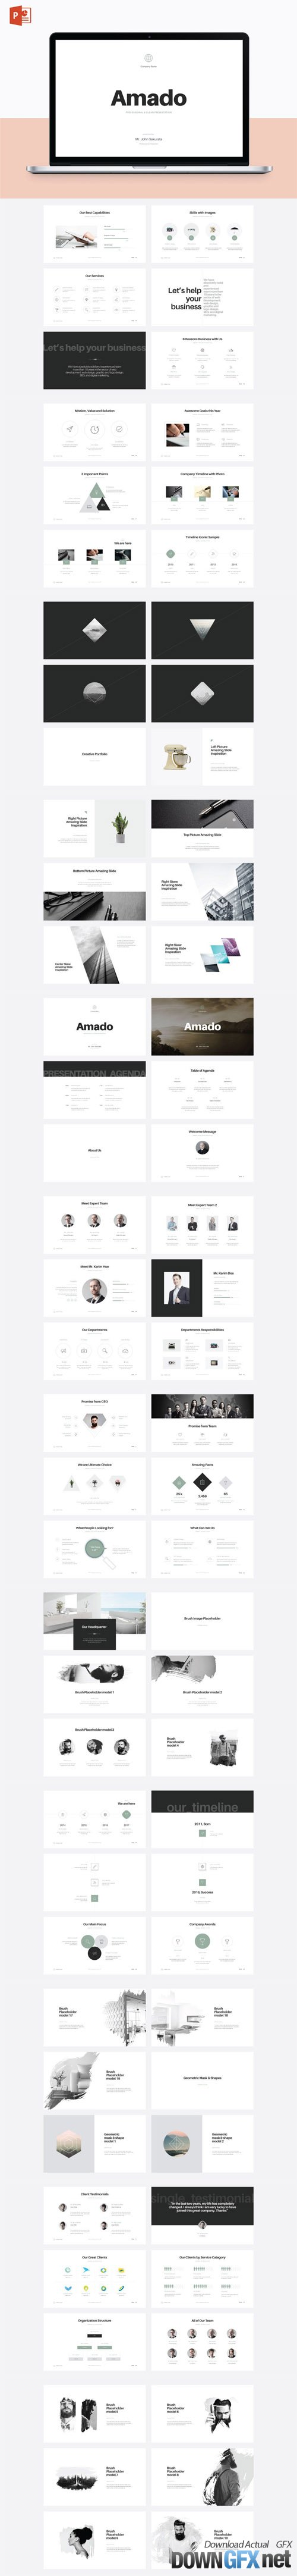 Amado - Multipurpose PowerPoint Template (V.24) 16678354